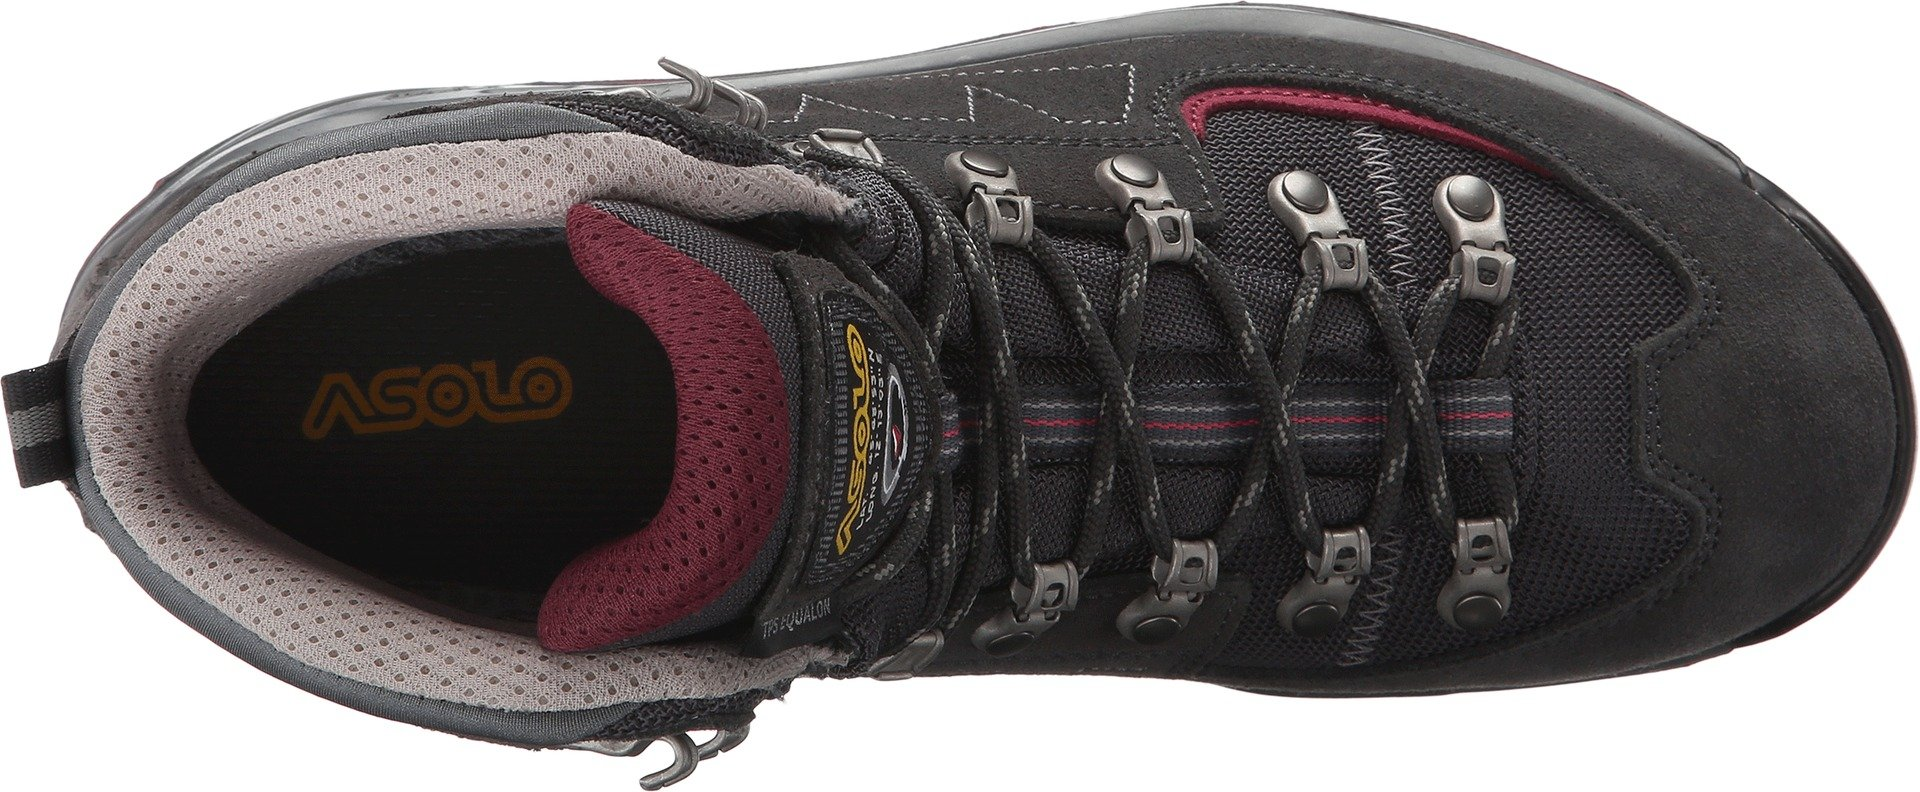 Asolo Women's TPS Equalon GV EVO Graphite/Red Bud 6 B US by Asolo (Image #2)